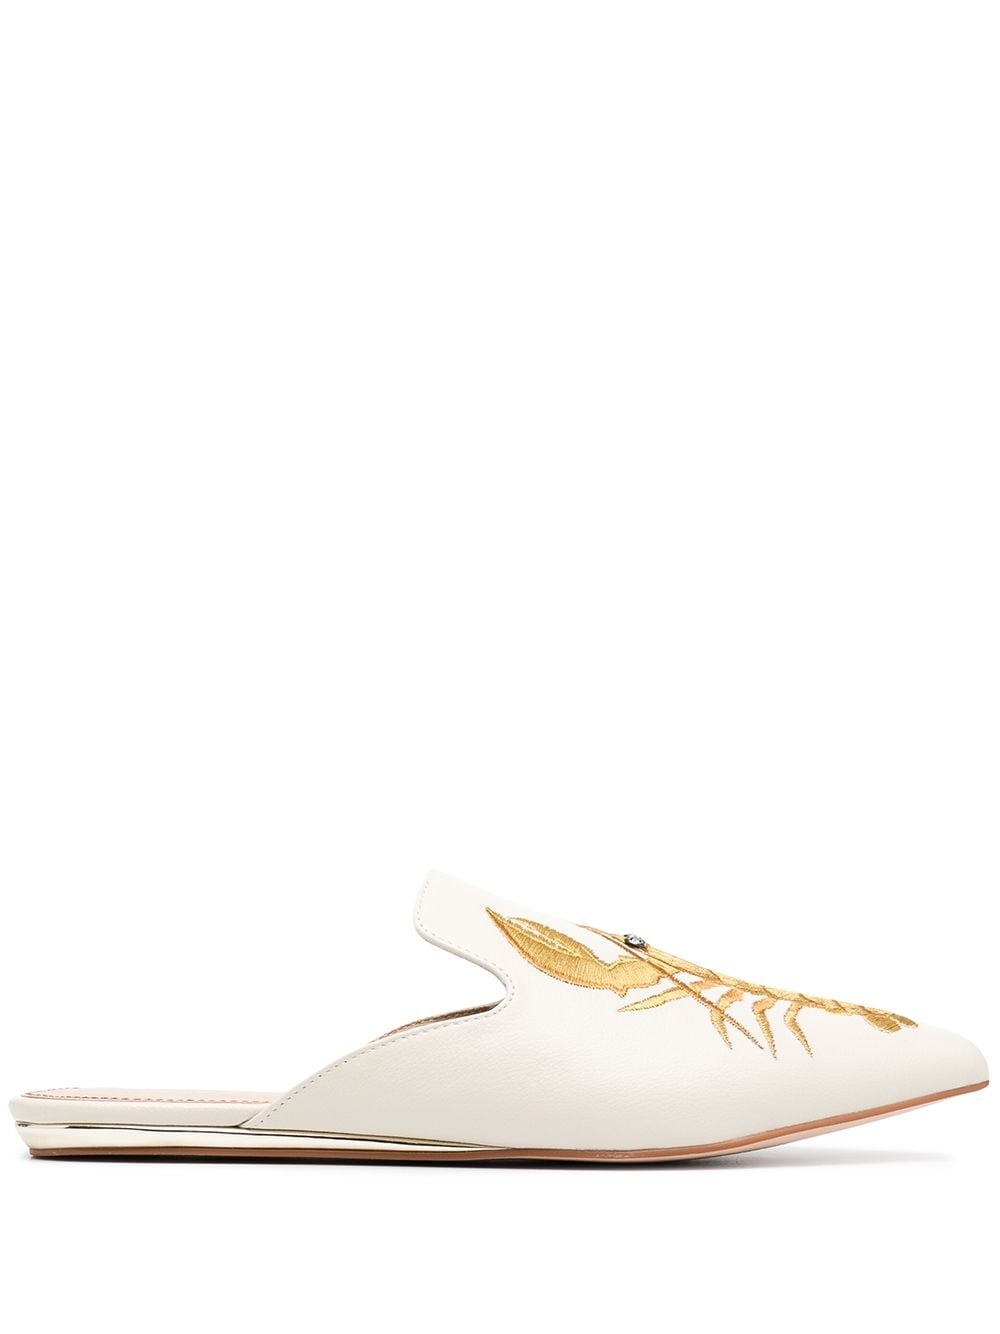 Kurt Geiger London Slipper mit Stickerei - Nude